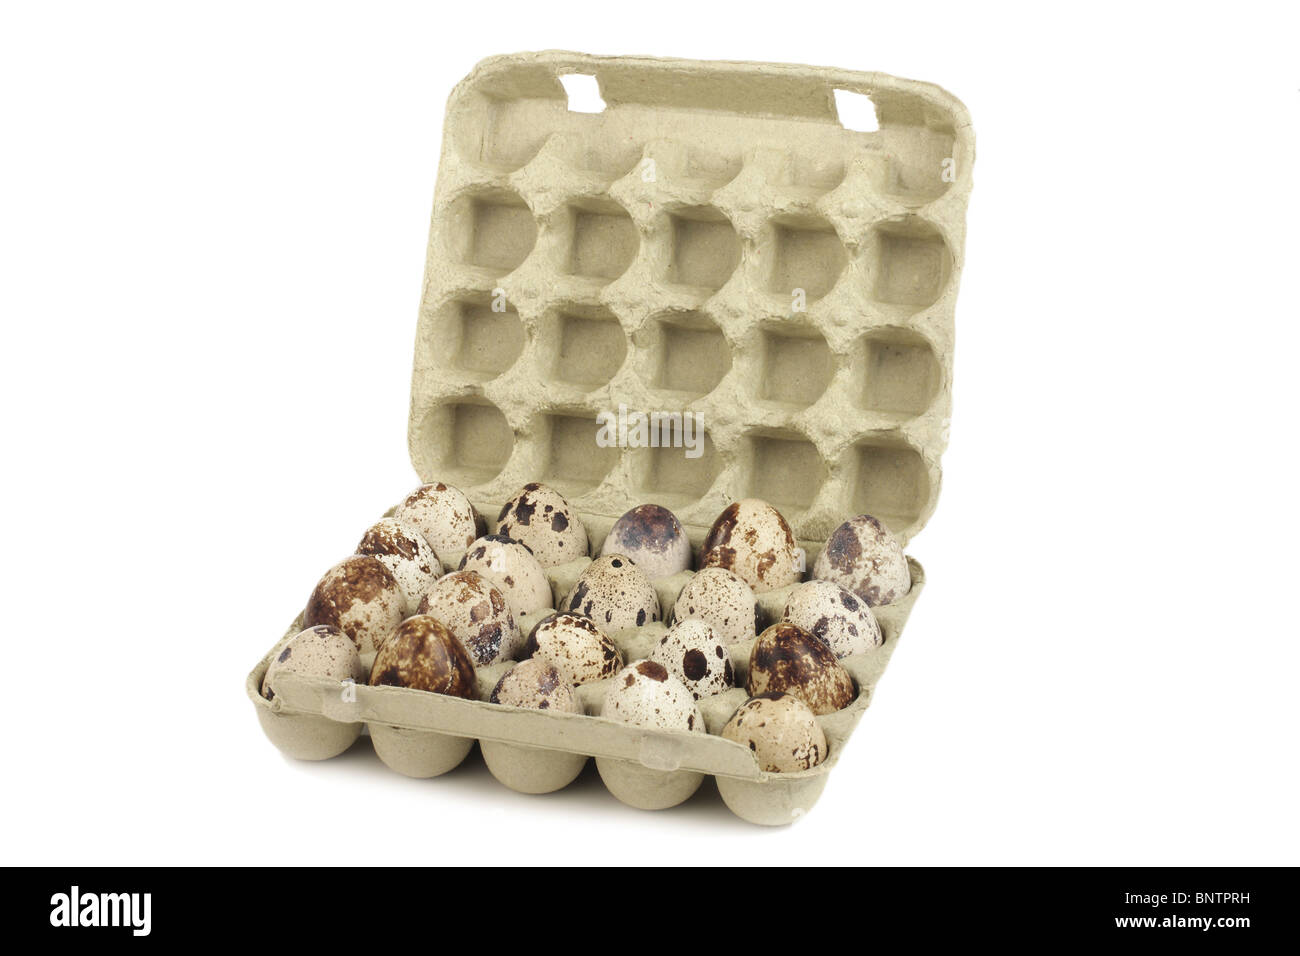 Quail eggs in a box on a white background - Stock Image